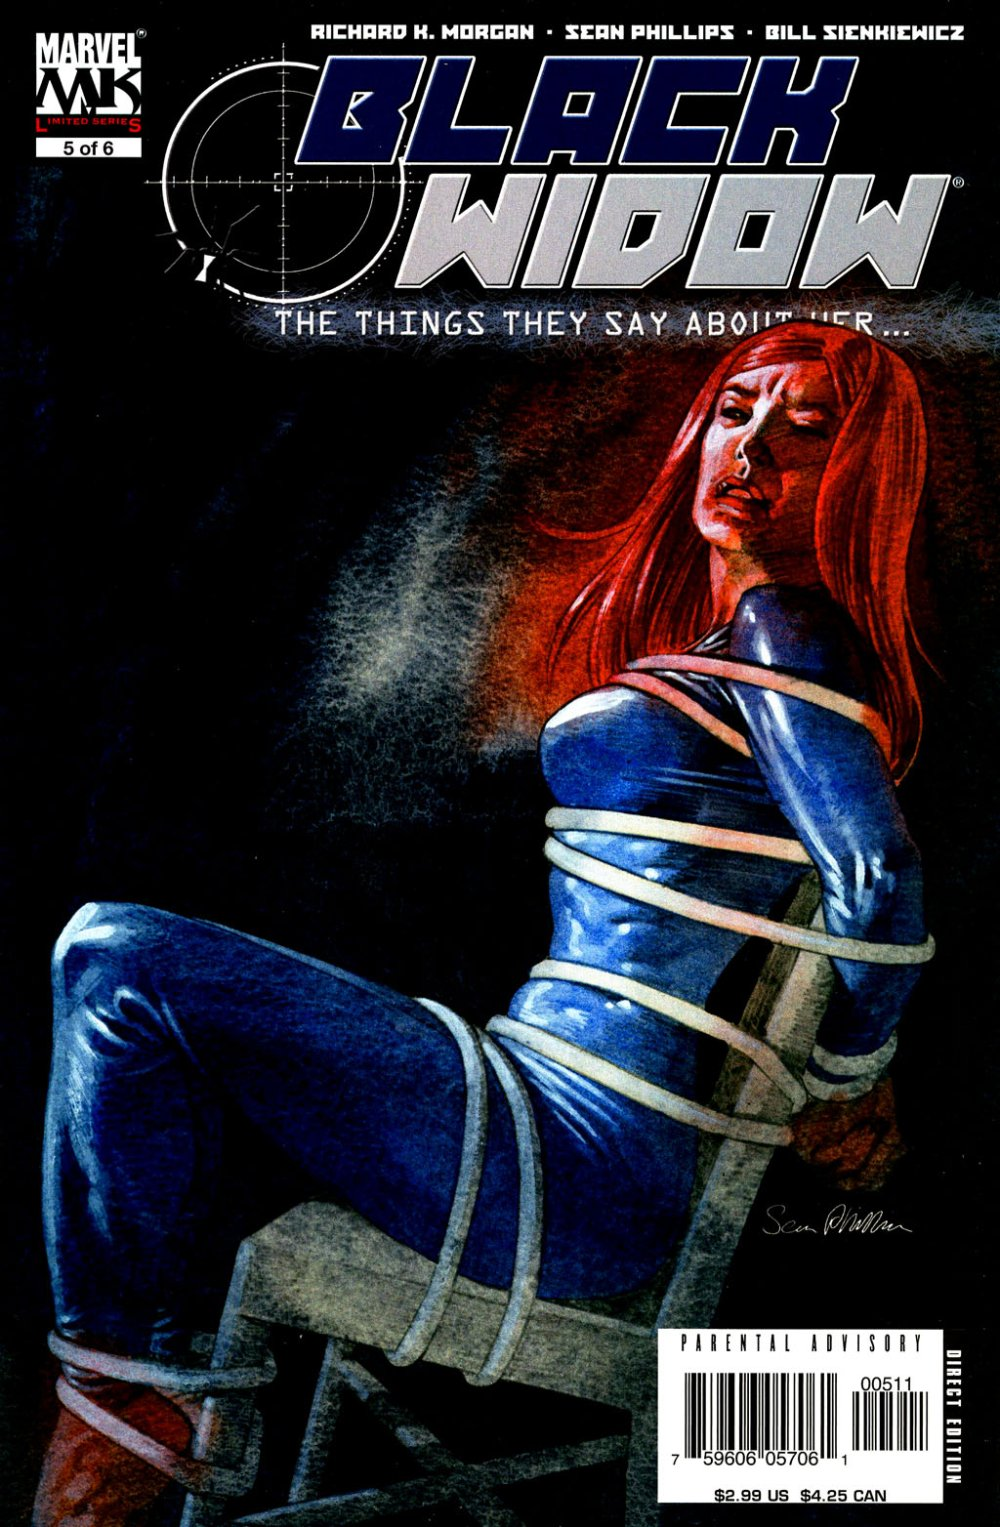 Black Widow- The Things They Say About Her [Marvel] Mini 1 0005.JPG